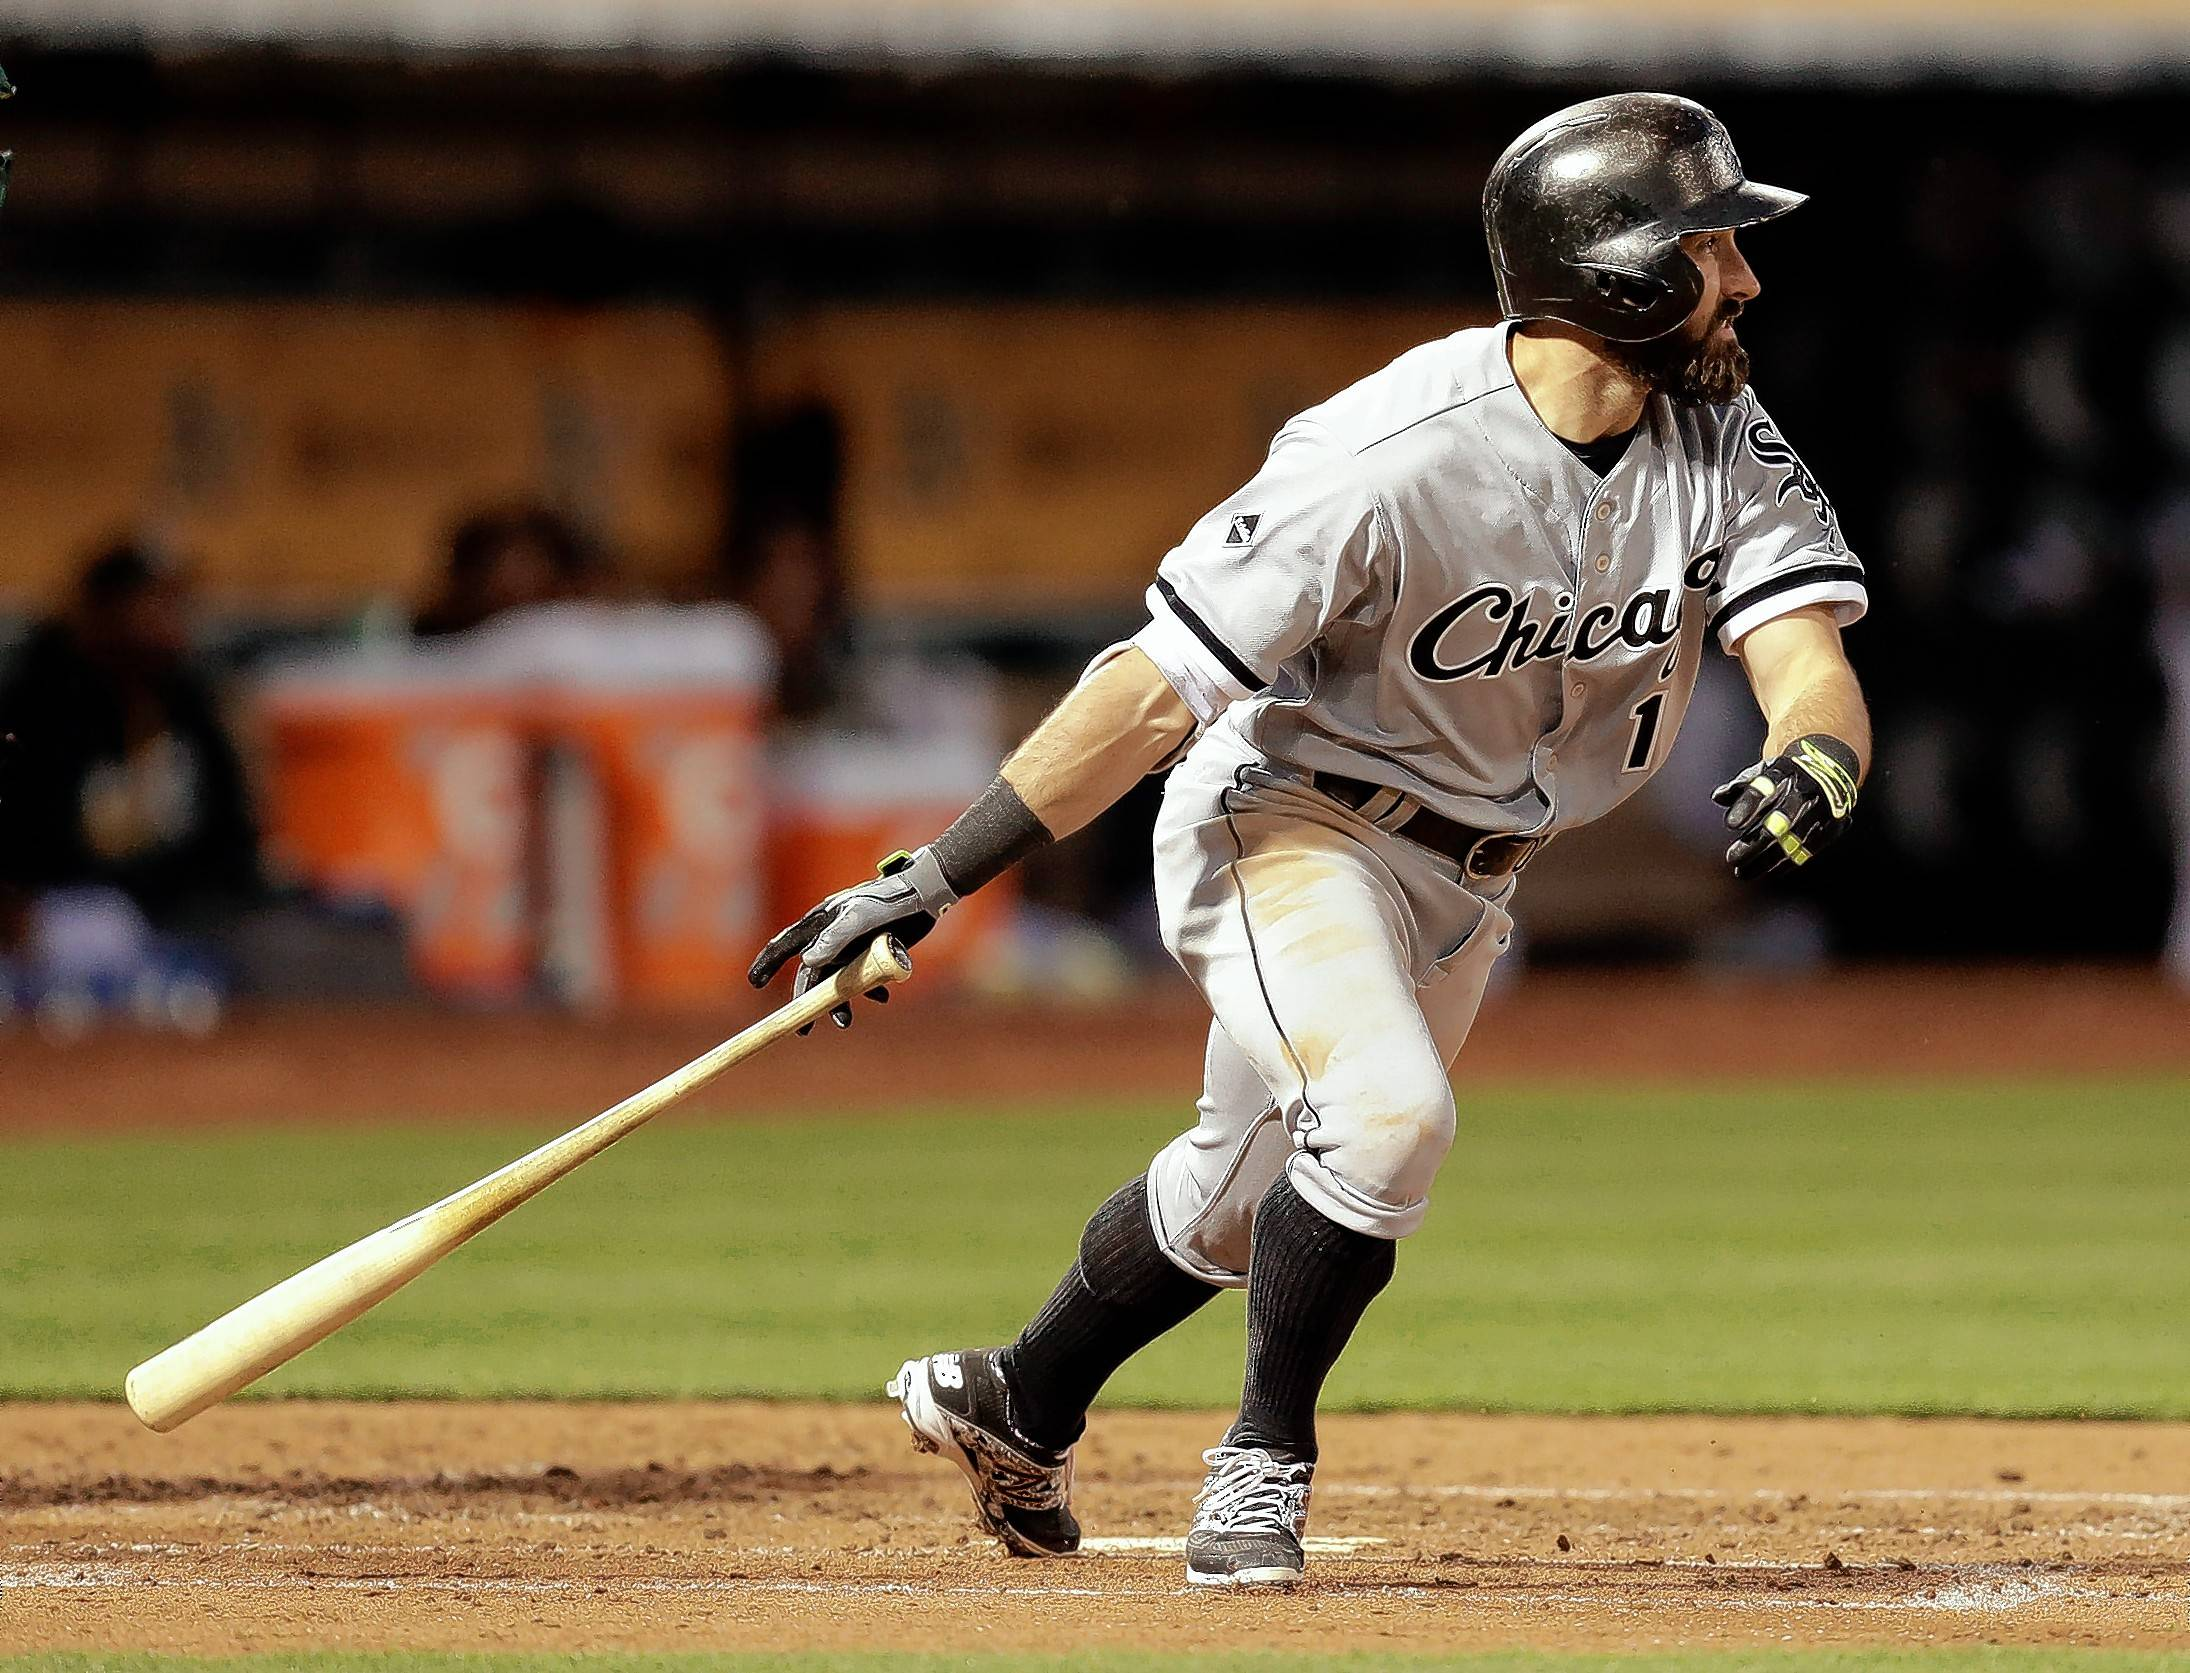 Adam Eaton has been solid at the plate for the White Sox with a .283/.357/.374 hitting line,